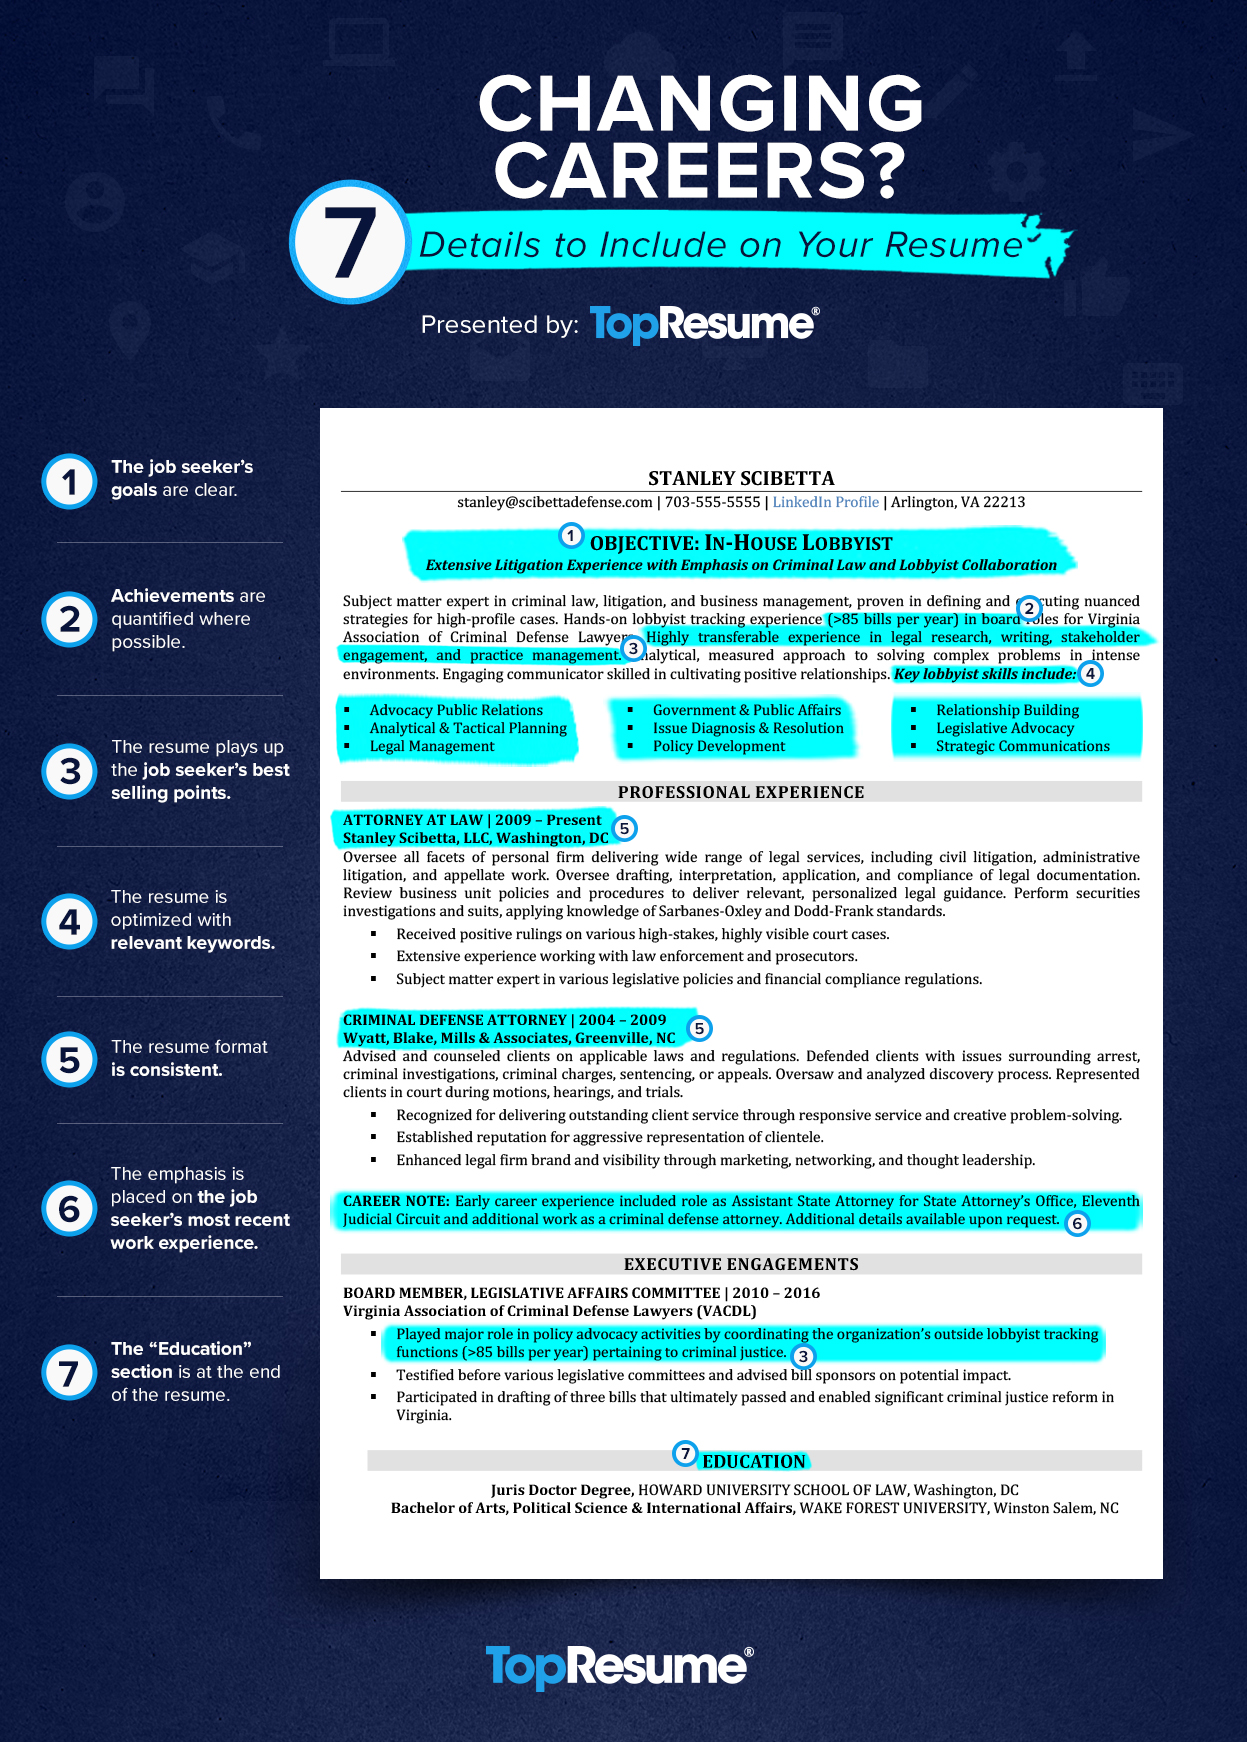 resume objective examples for changing careers